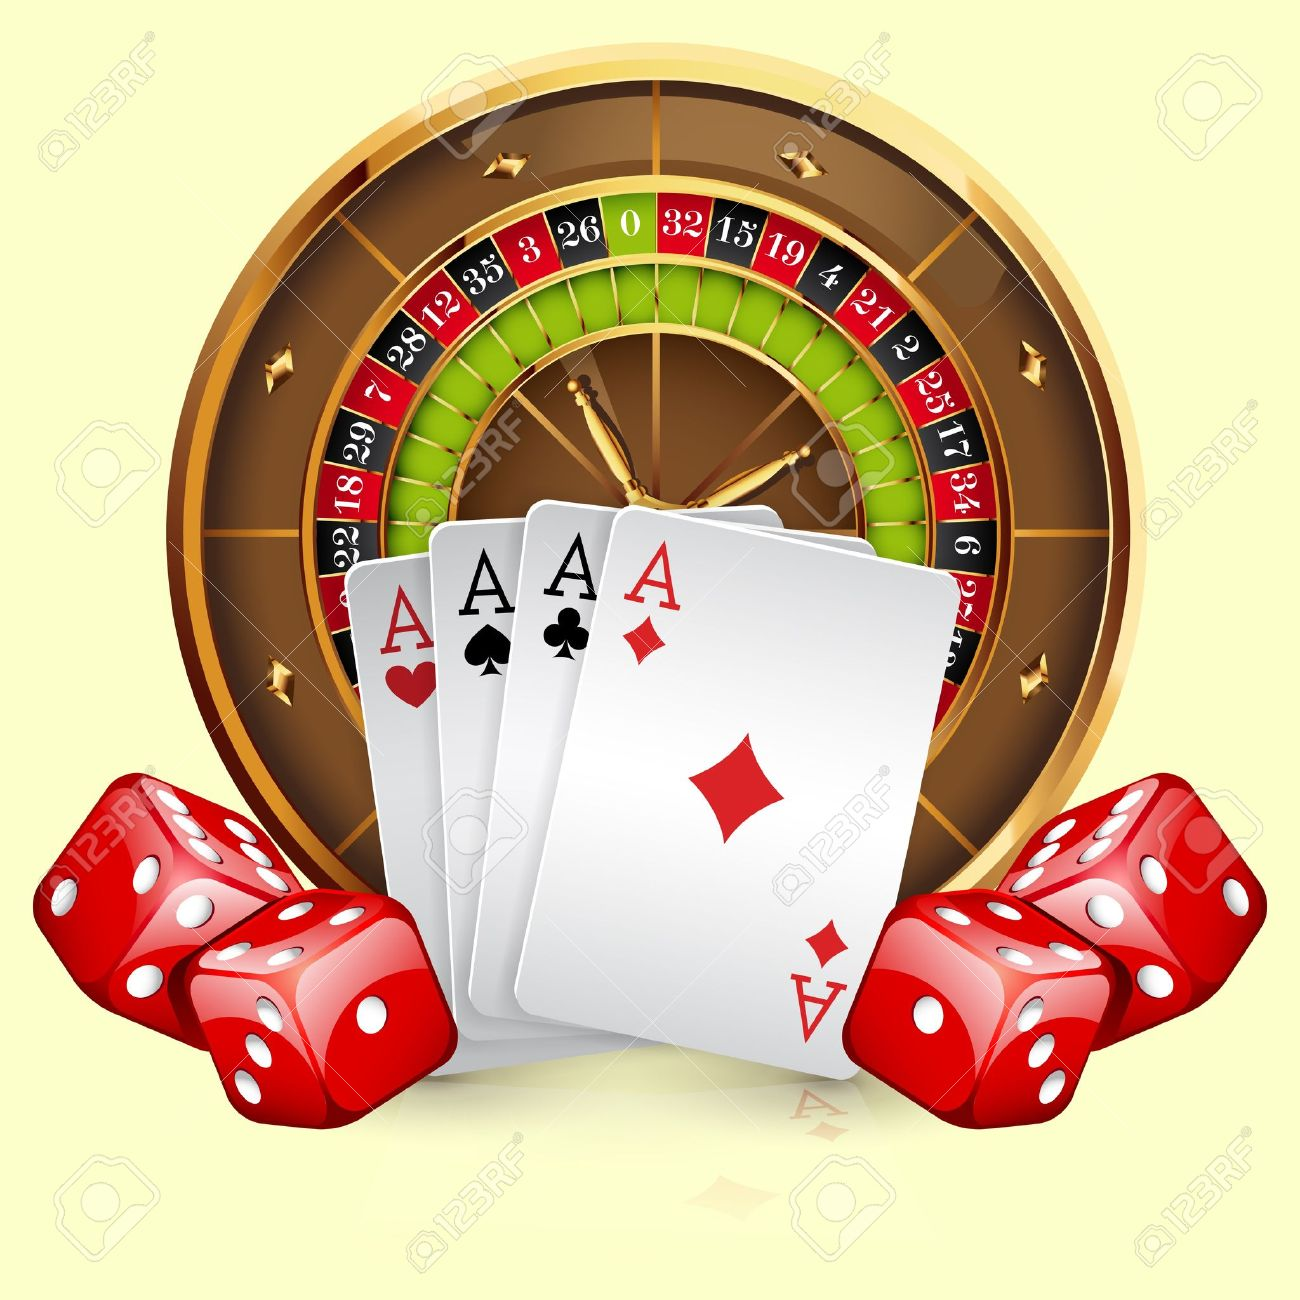 Illustration of casino roulette wheel with cards and dice. Isolated on white background Stock Vector - 12819907